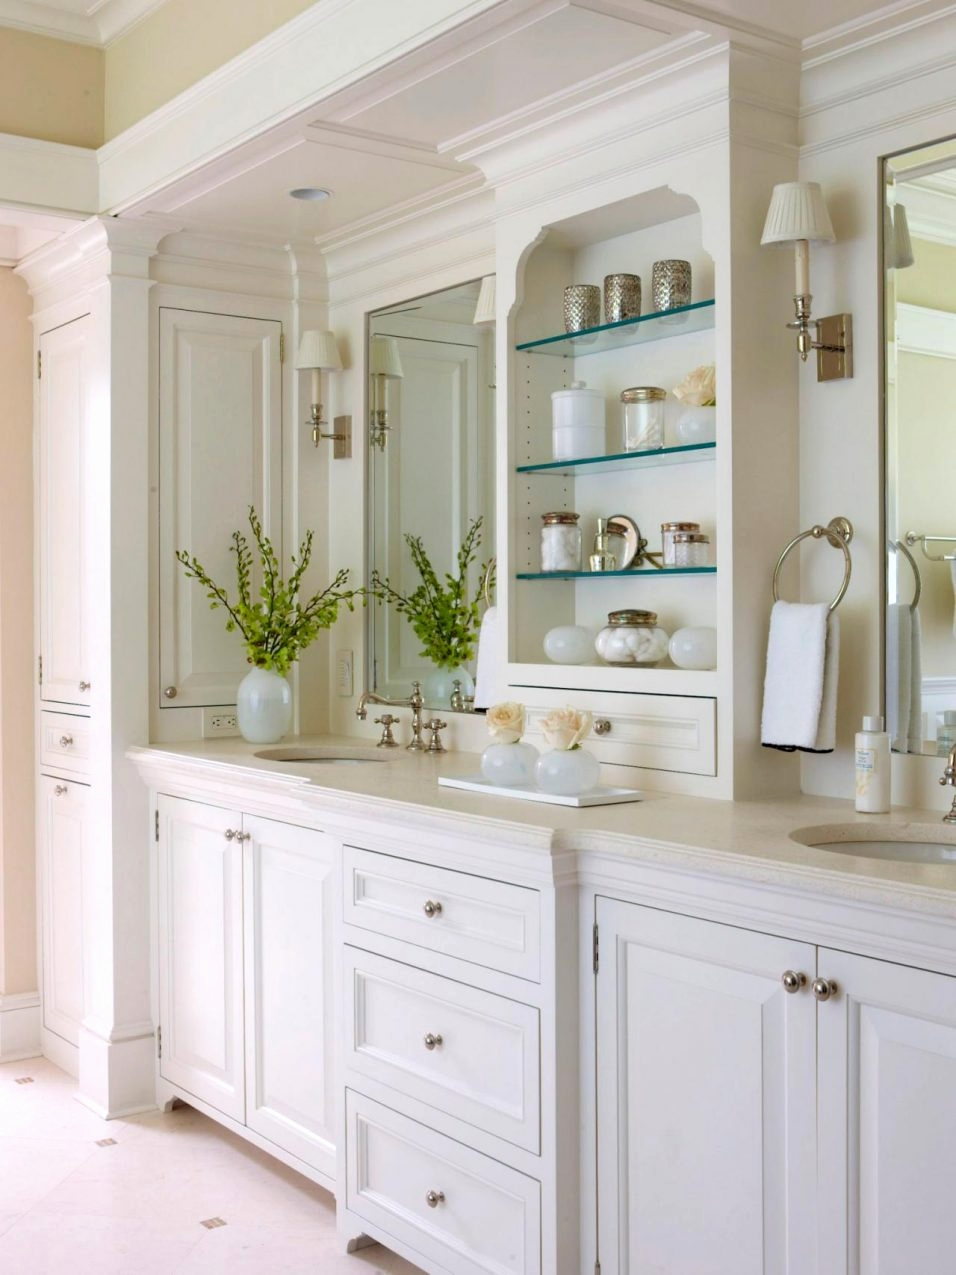 Bathroom Cabinets Design Houzz Best Of Impressive Vanity Houzz For